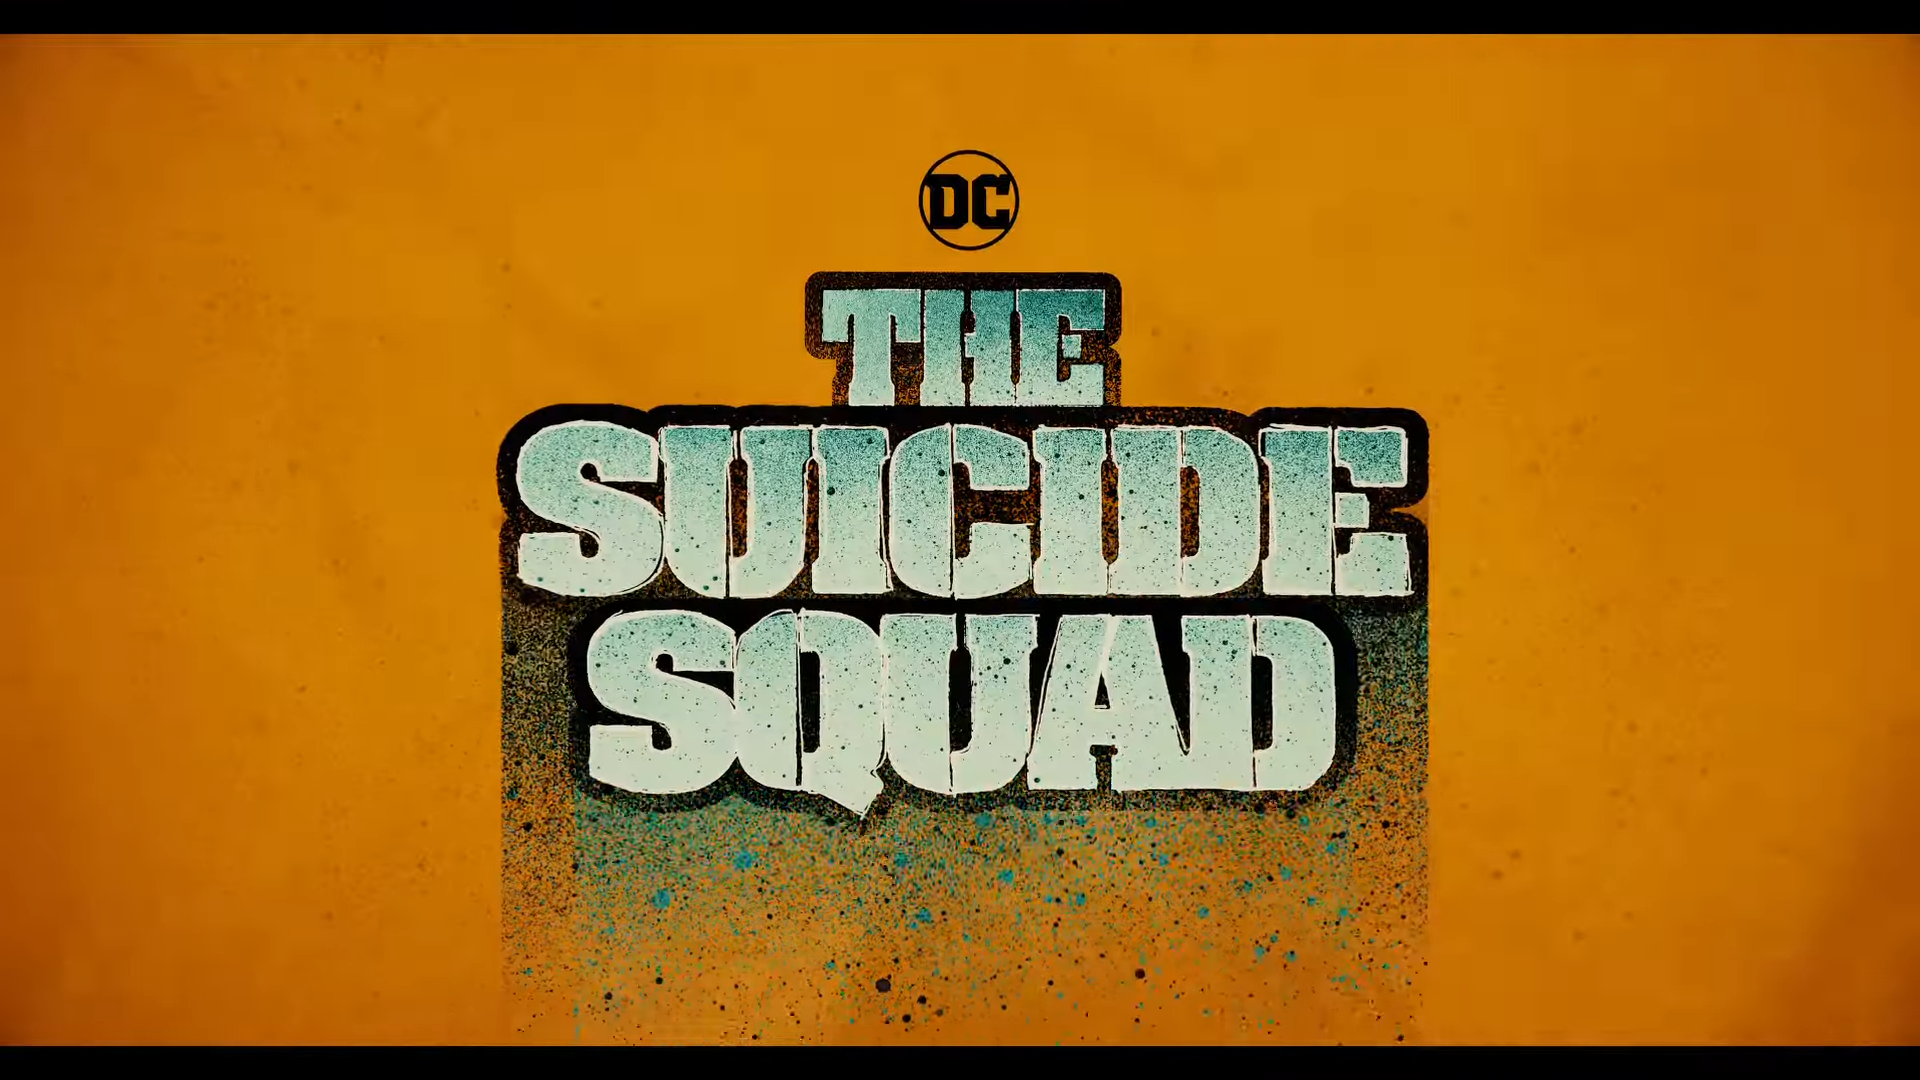 THE-SUICIDE-SQUAD-Rebellion-Trailer-2-19-screenshot-158